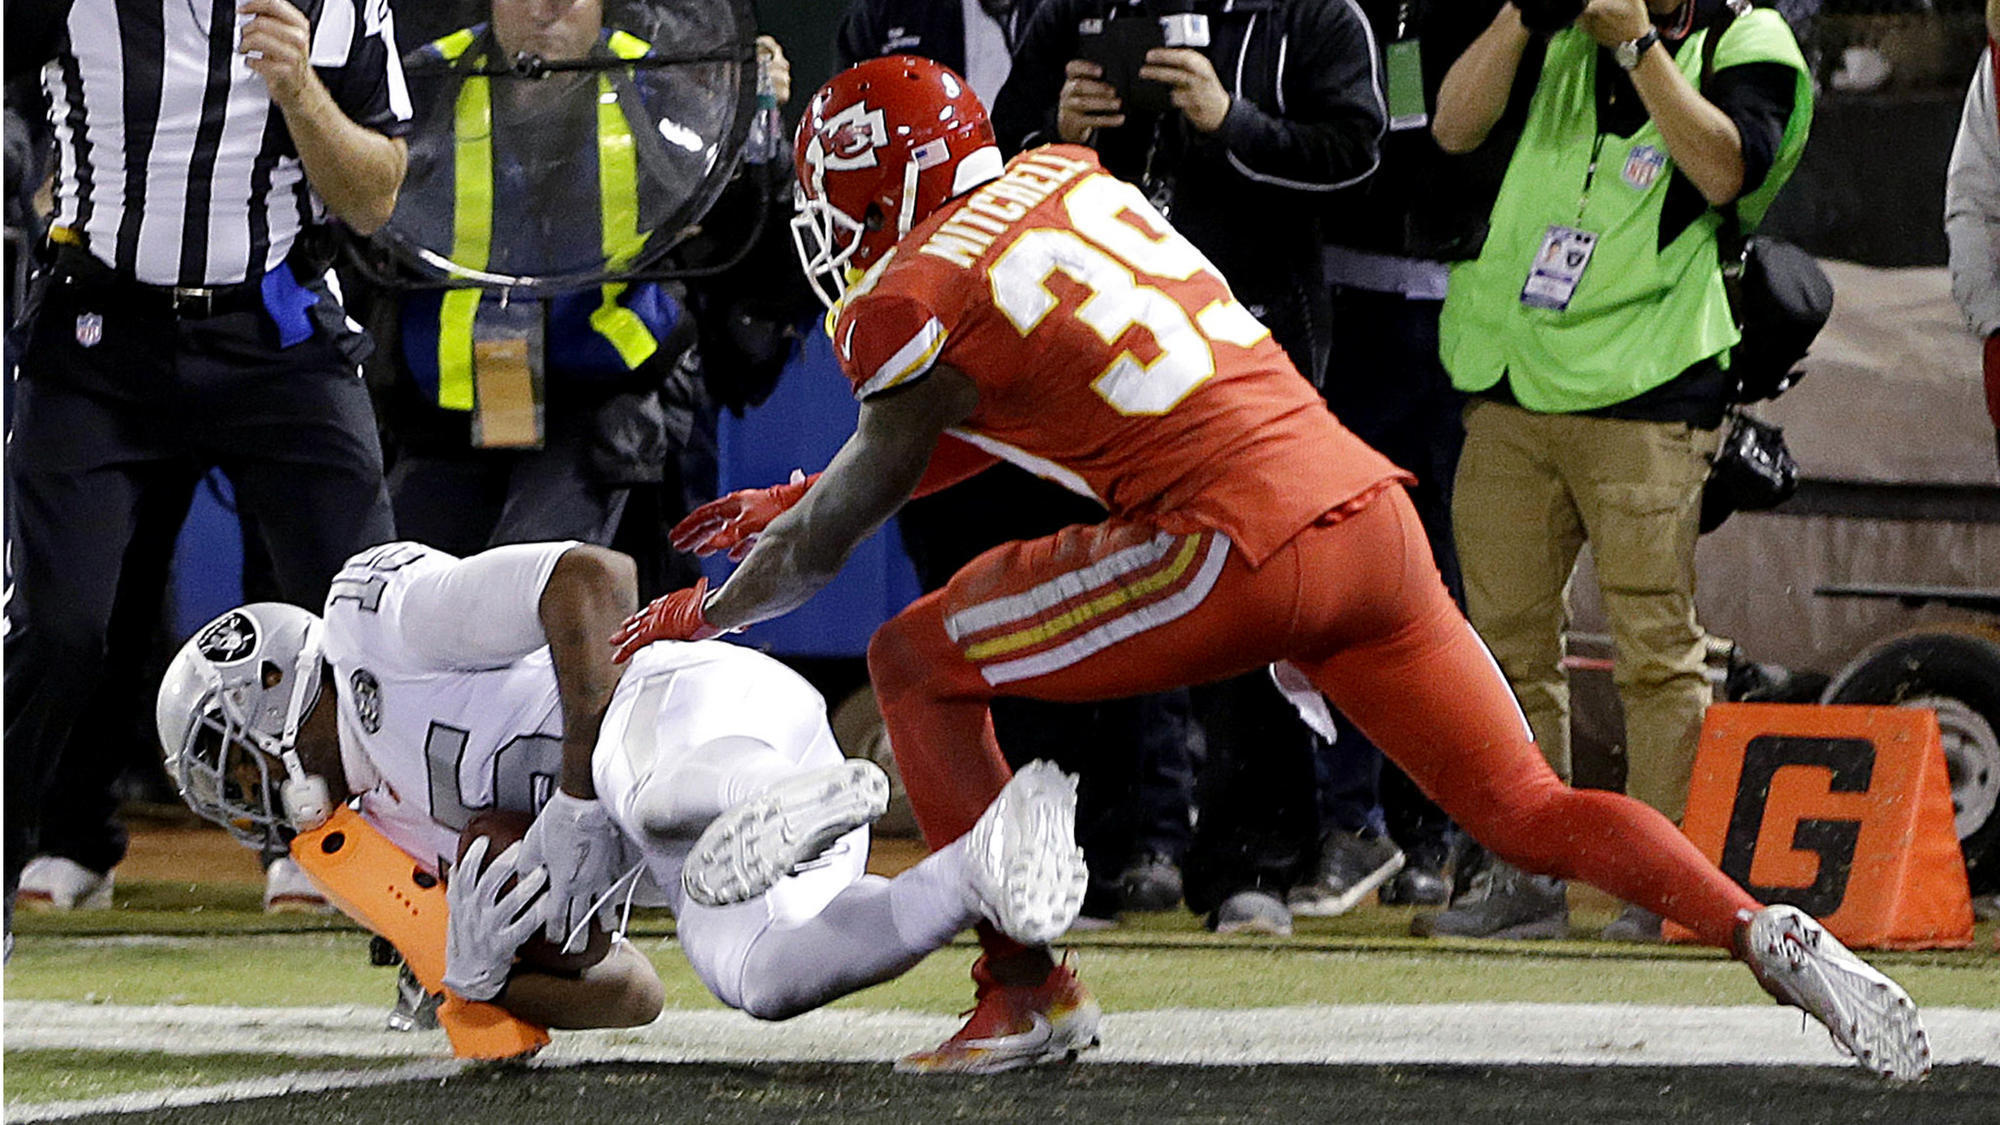 Raiders score on final play of game to beat Chiefs - LA Times